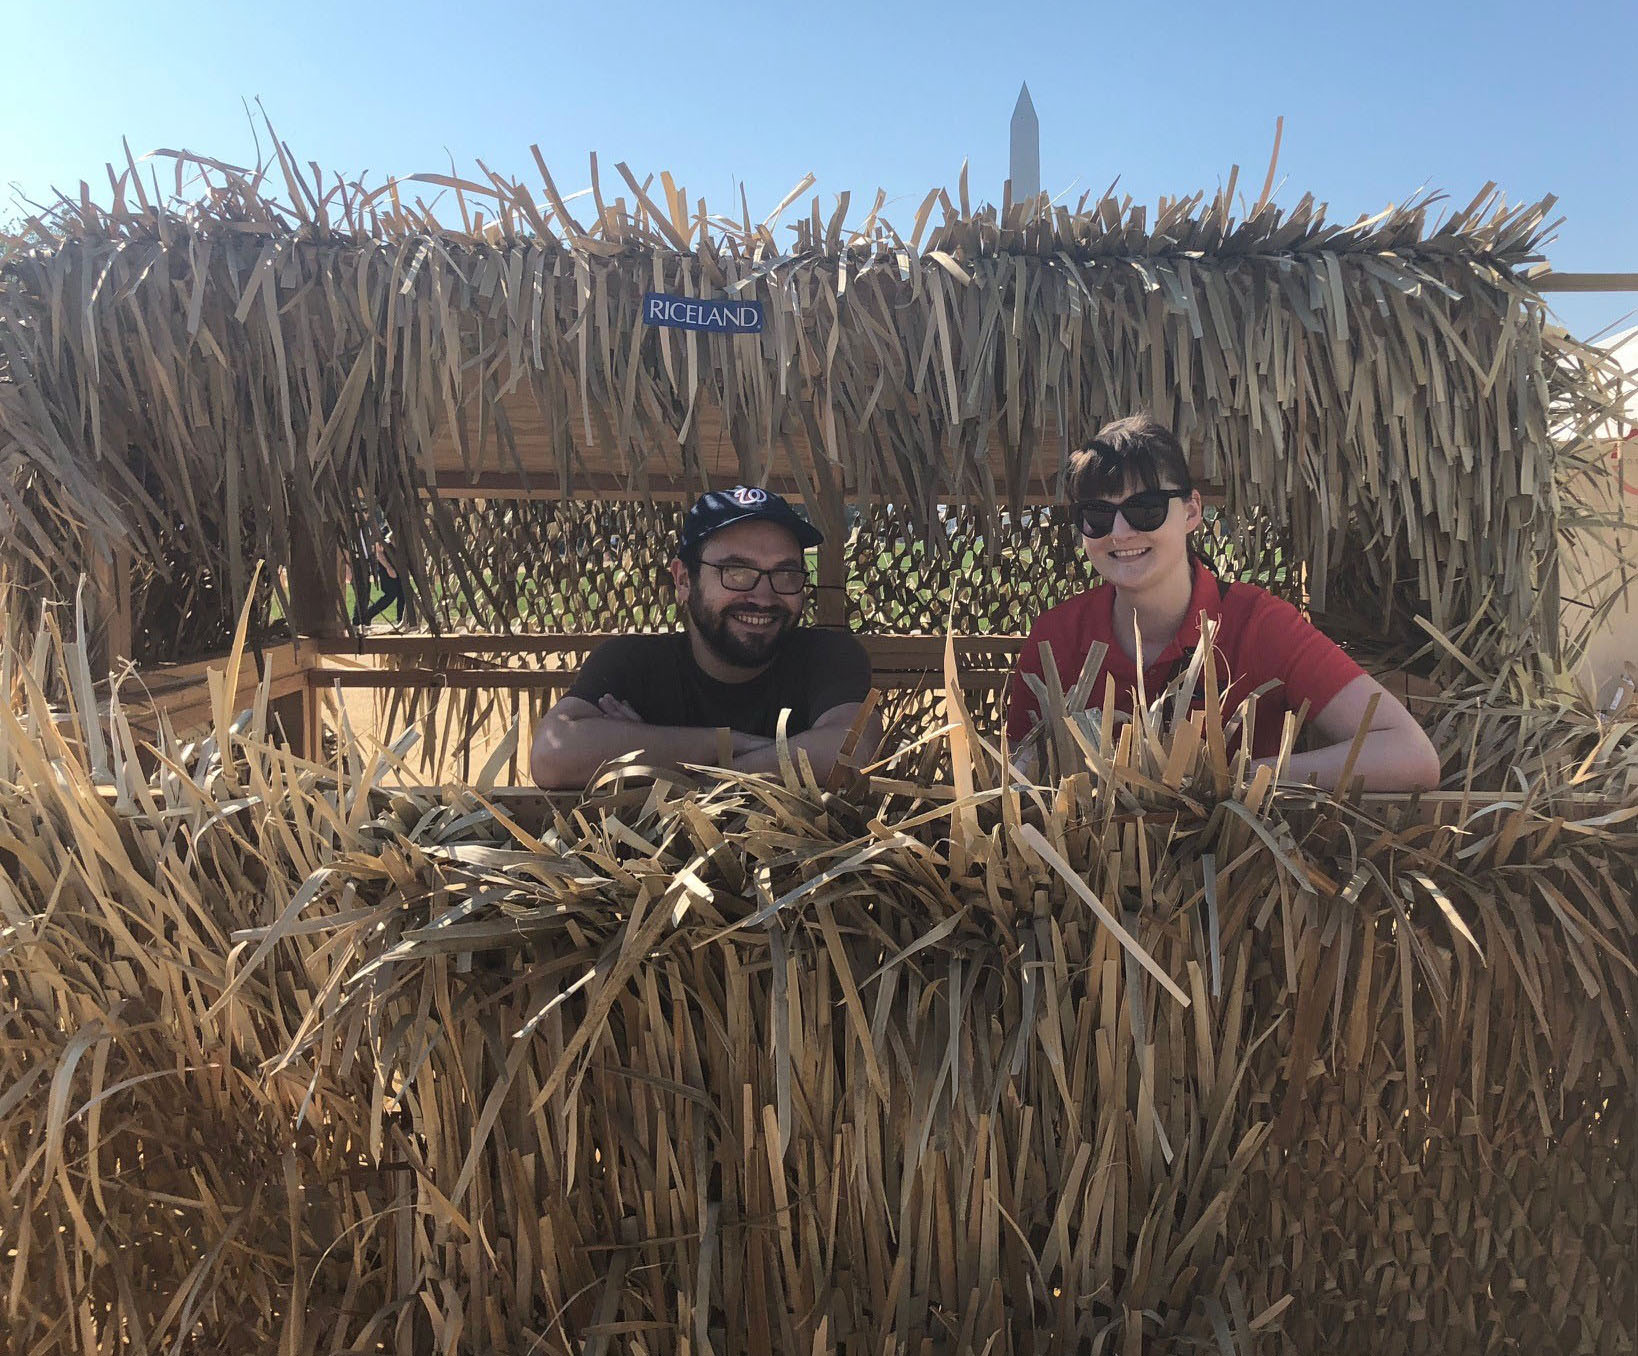 Riceland Duck Blind, two people amidst rice stalks that camouflage shooting gallery